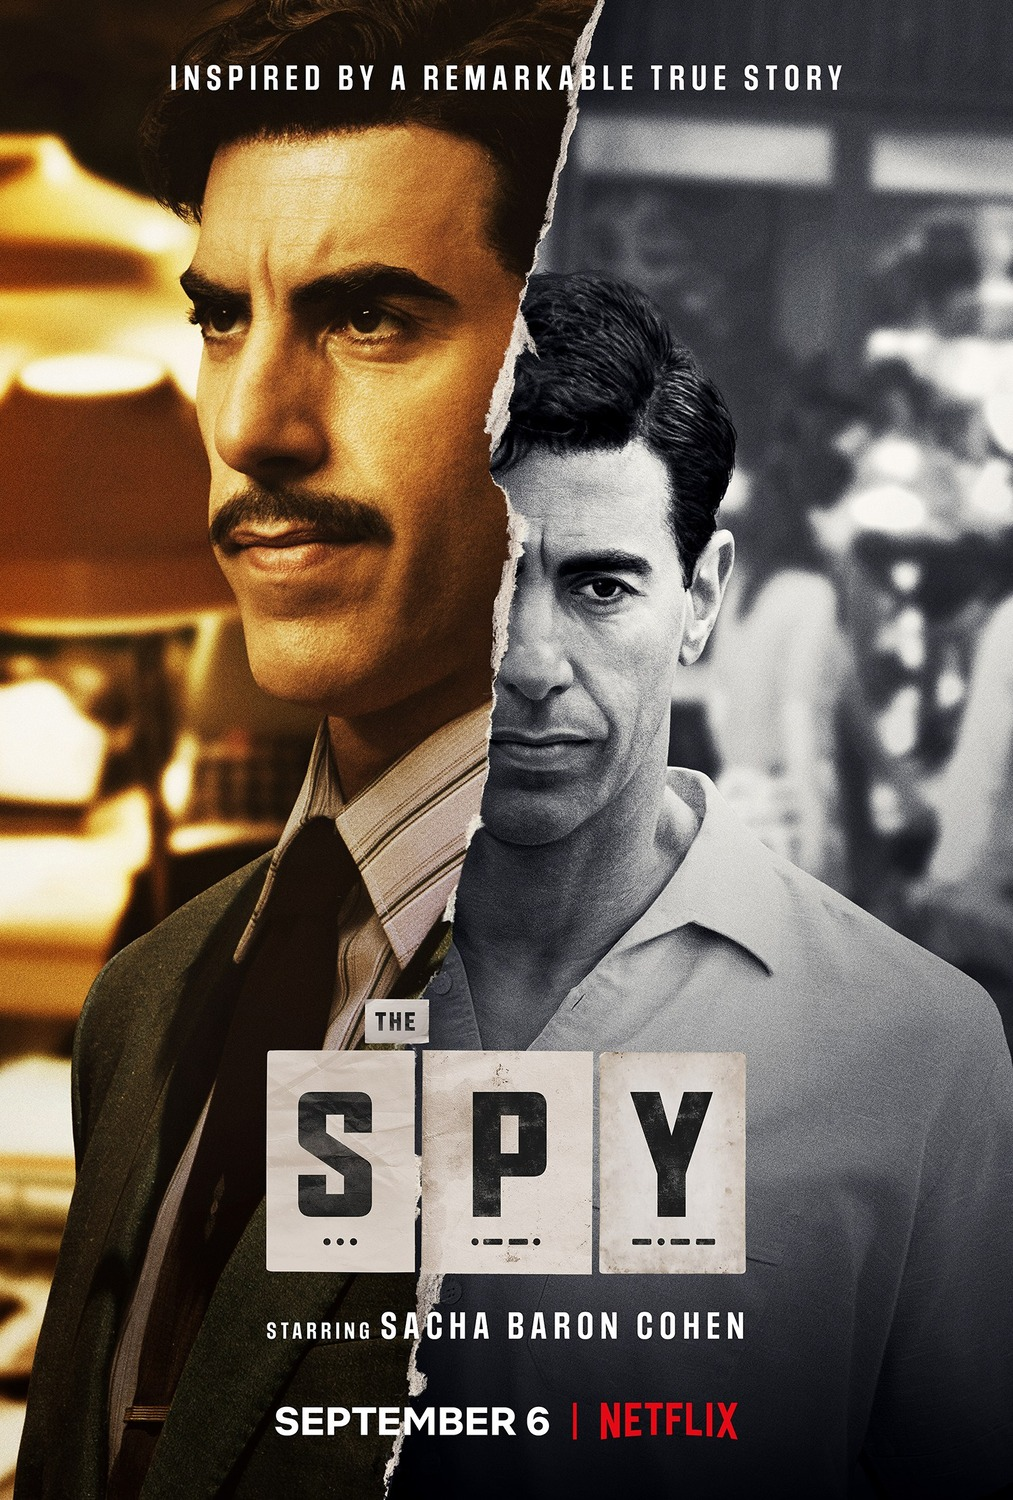 The Spy Season 1 COMPLETE WEBRip 480p, 720p & 1080p